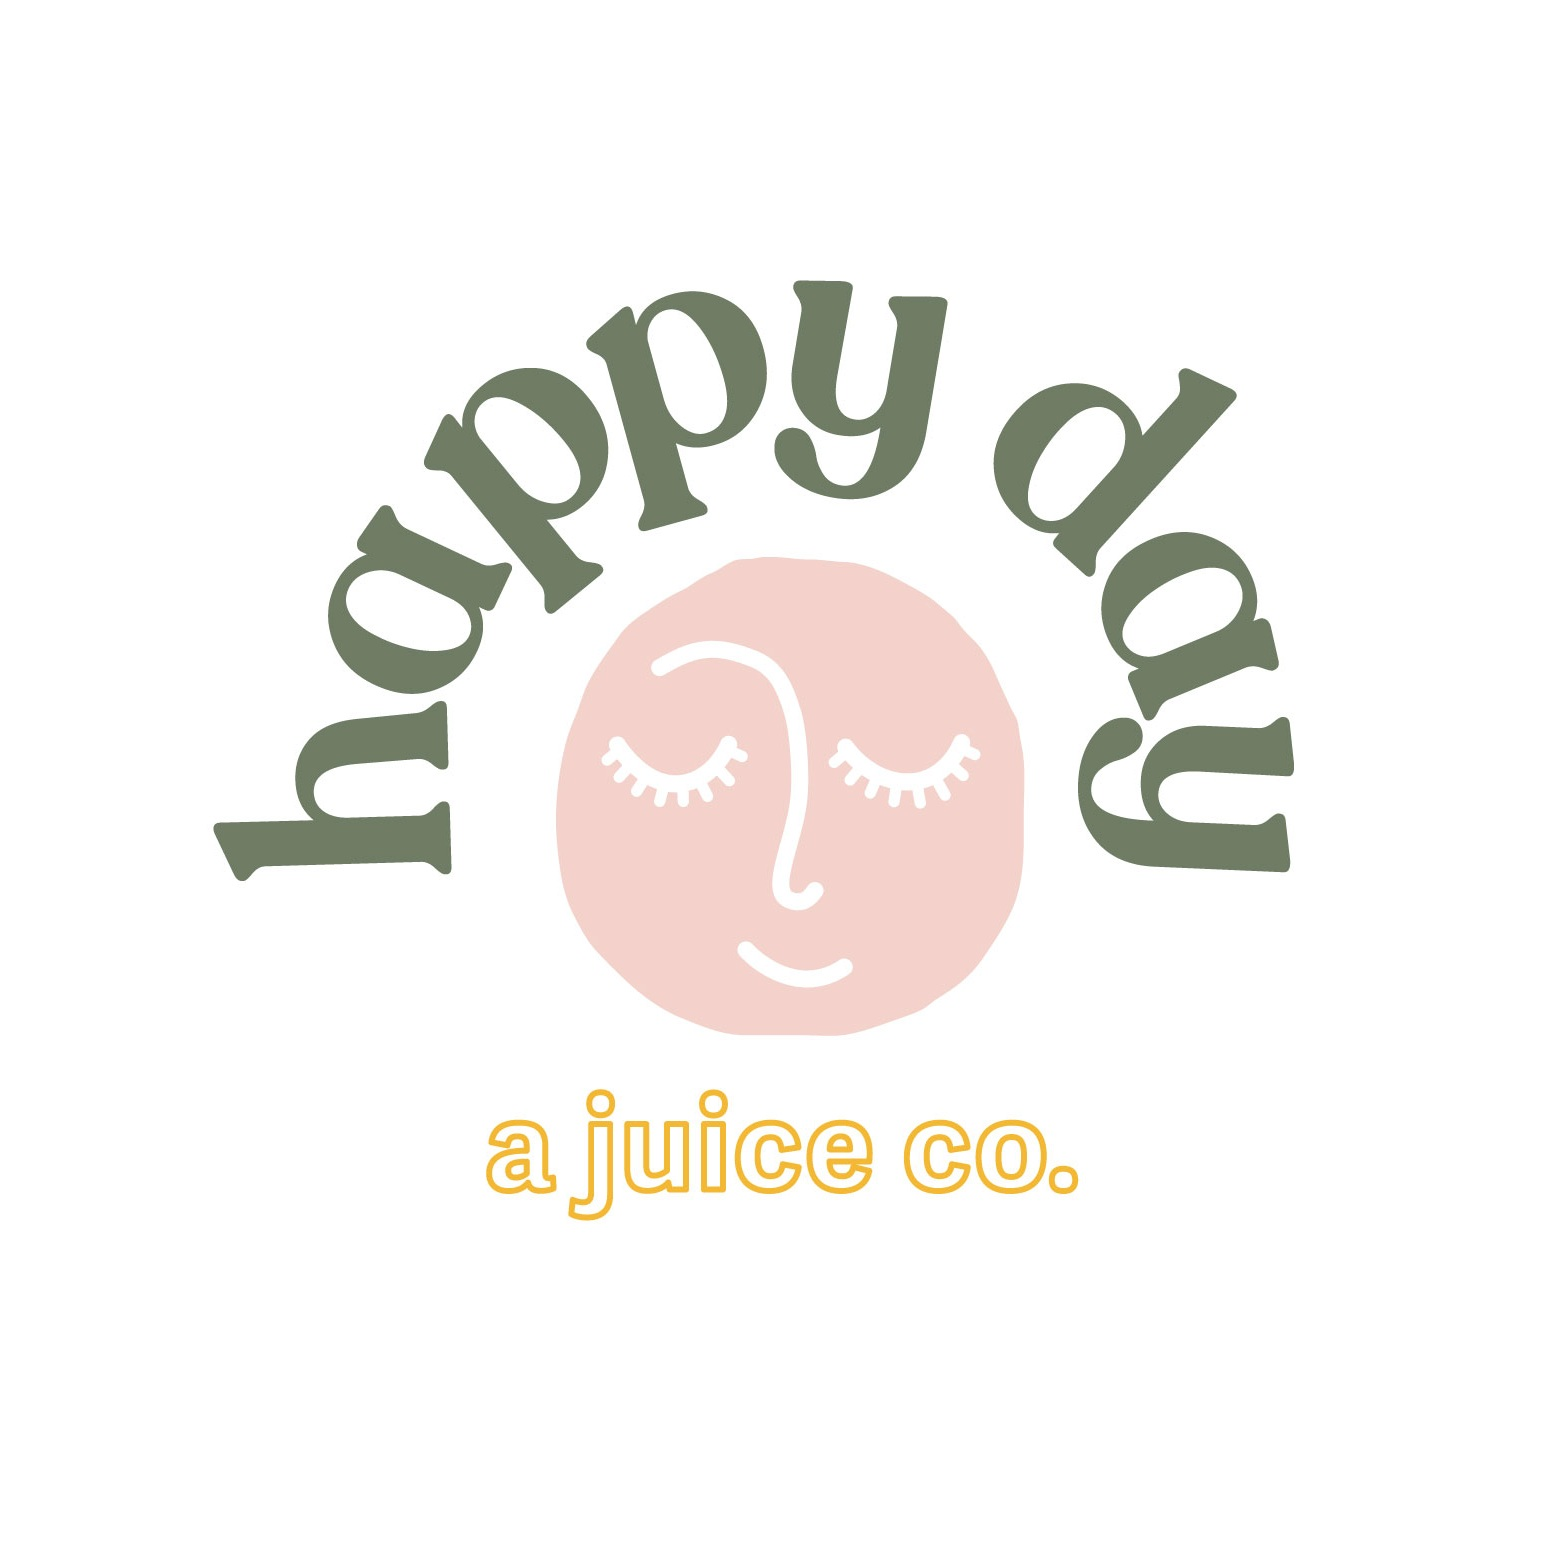 Happy+Day+Juice+Co.+in+Portland%2C+Oregon+brand+design+by+Perspektiiv+Design+Co.jpg